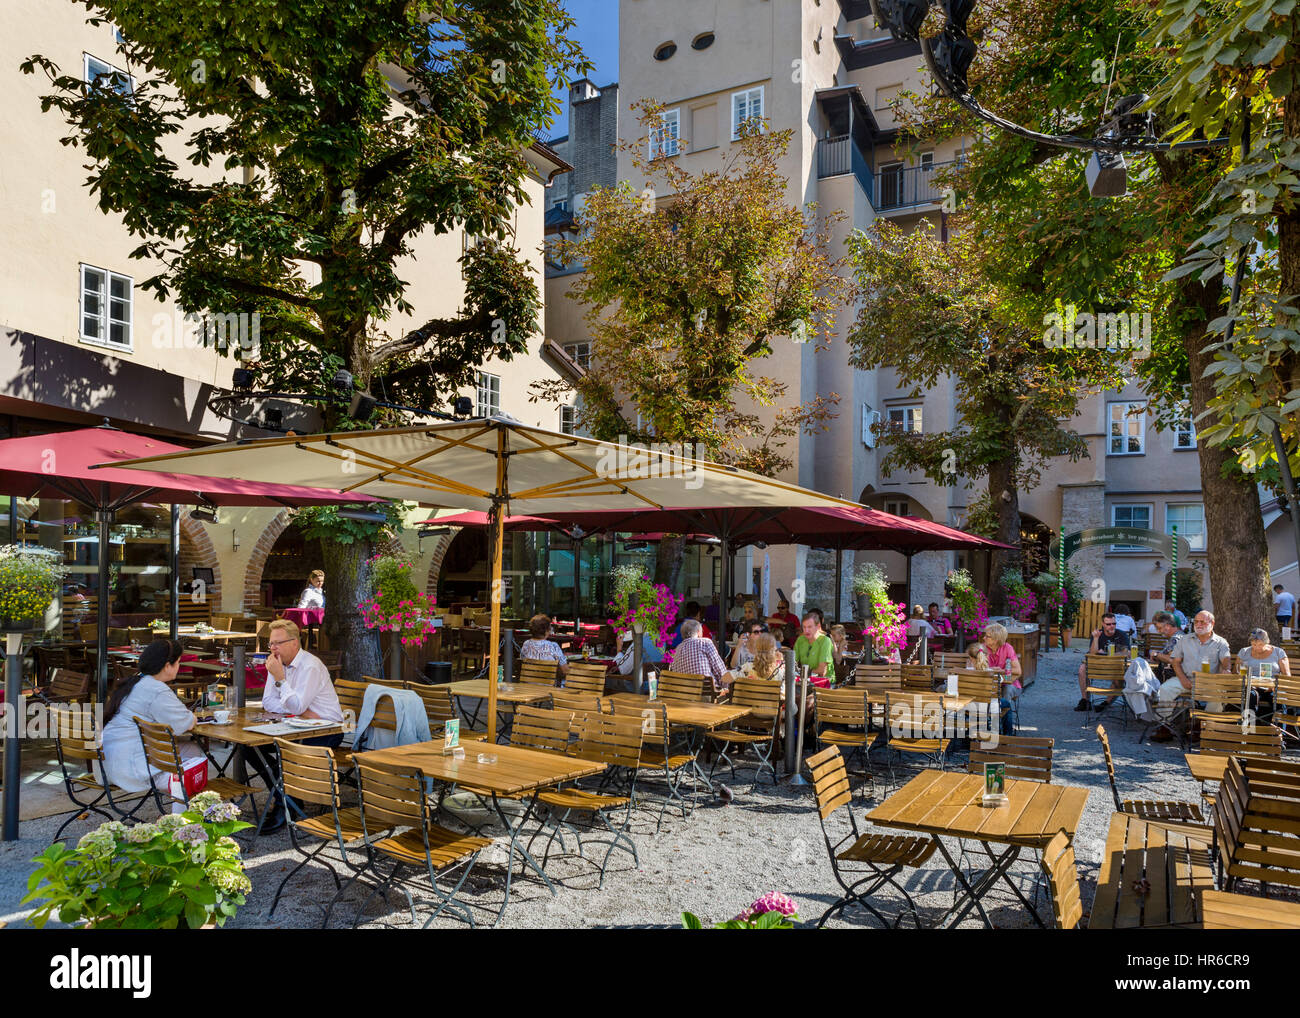 Sternbräu beer garden in the old town, Salzburg, Austria - Stock Image